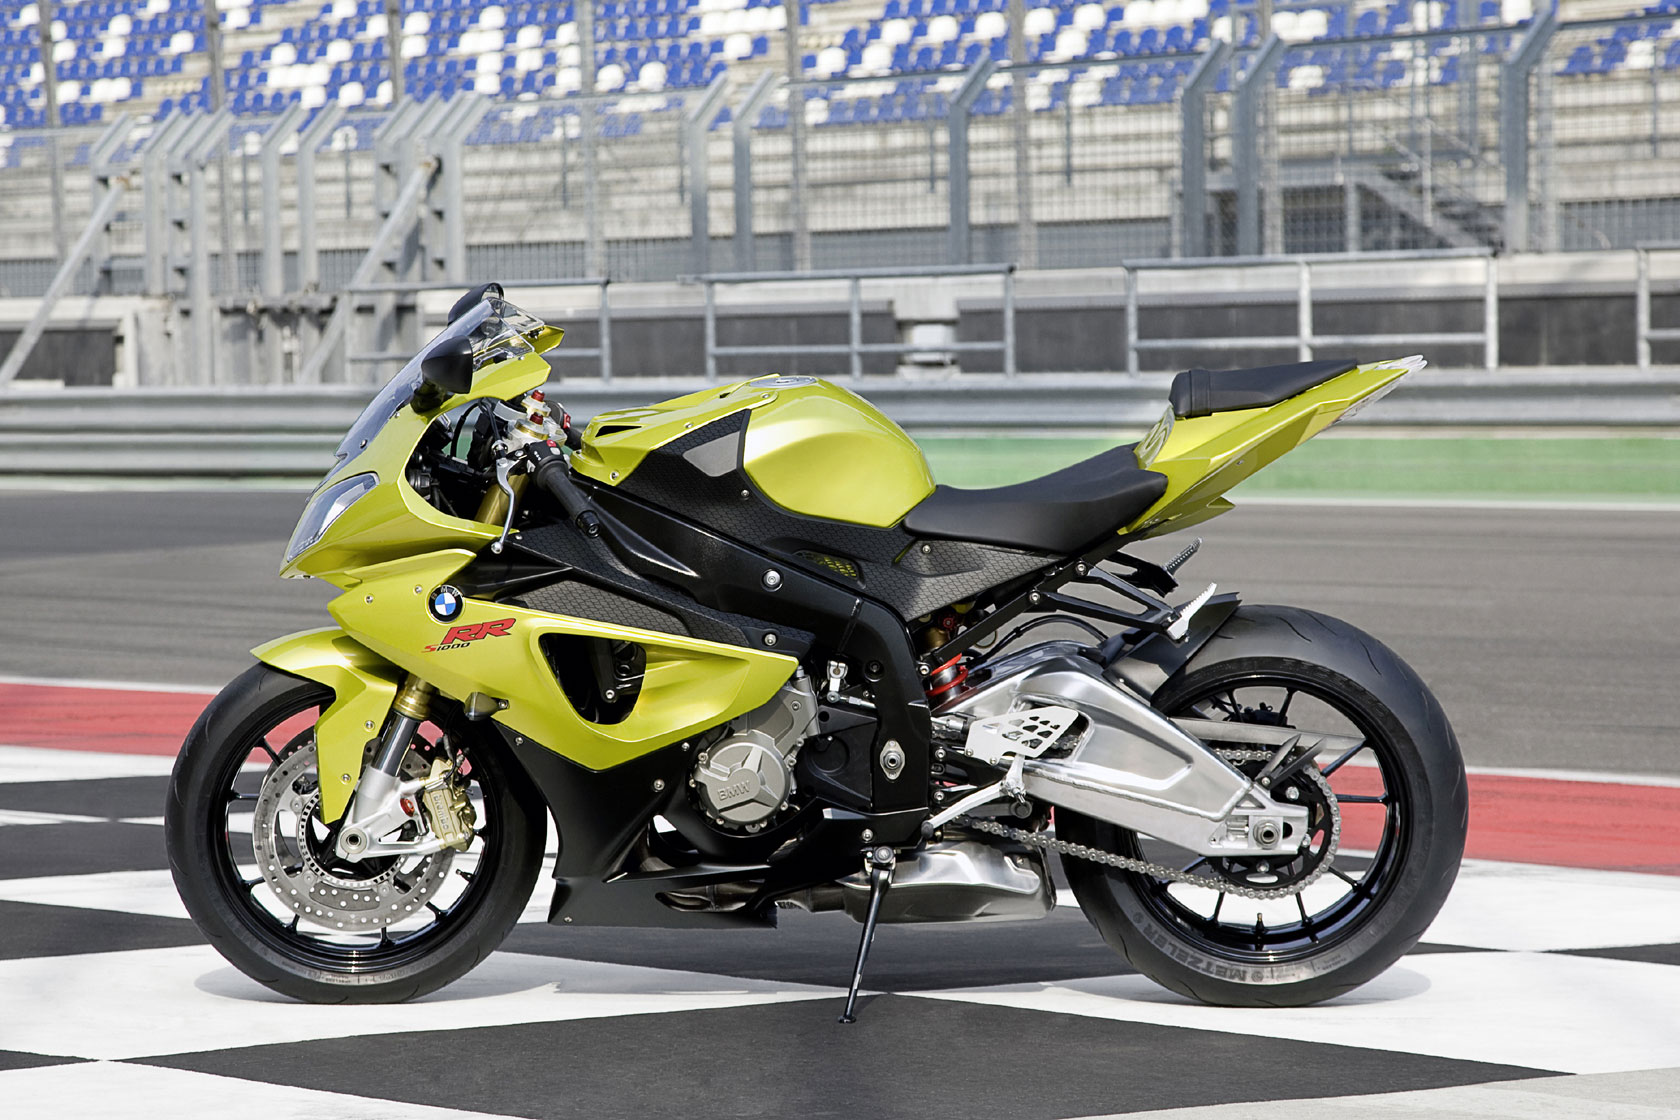 BMW S 1000 RR ABS 2010 images #8969